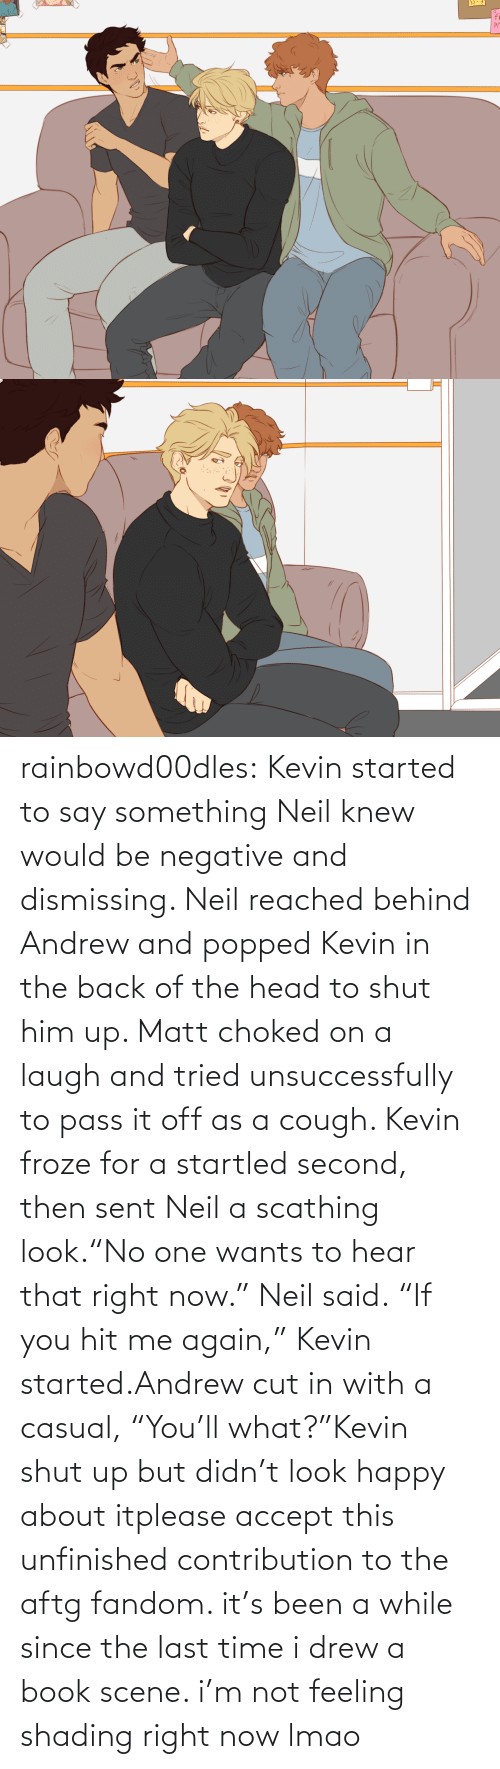 "LMAO: rainbowd00dles:  Kevin started to say something Neil knew would be negative and dismissing. Neil reached behind Andrew and popped Kevin in the back of the head to shut him up. Matt choked on a laugh and tried unsuccessfully to pass it off as a cough. Kevin froze for a startled second, then sent Neil a scathing look.""No one wants to hear that right now."" Neil said. ""If you hit me again,"" Kevin started.Andrew cut in with a casual, ""You'll what?""Kevin shut up but didn't look happy about itplease accept this unfinished contribution to the aftg fandom. it's been a while since the last time i drew a book scene. i'm not feeling shading right now lmao"